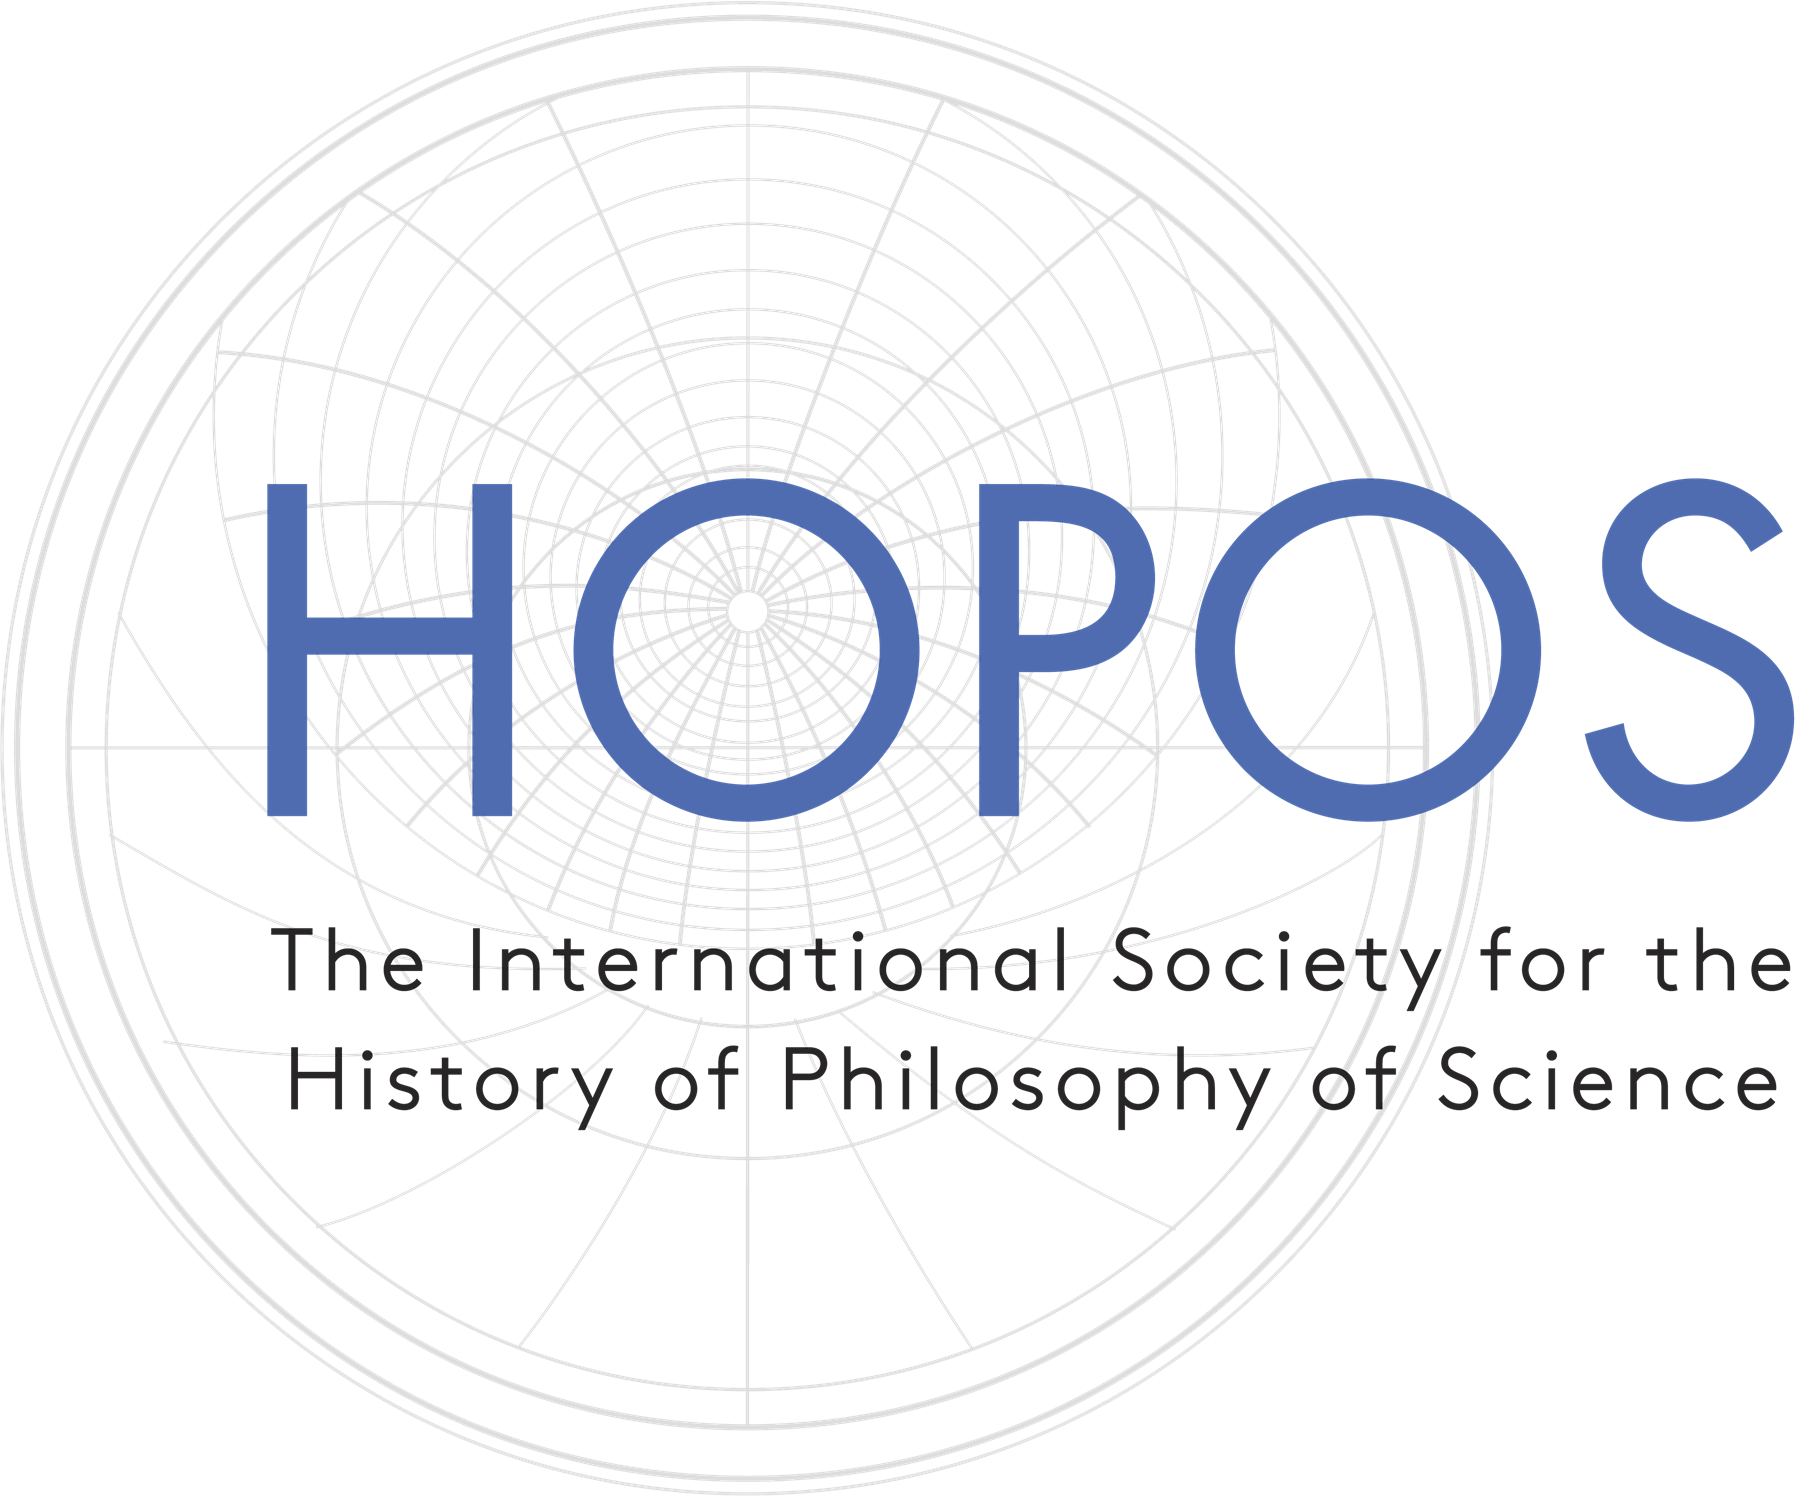 HOPOS – The International Society for History of Philosophy of Science